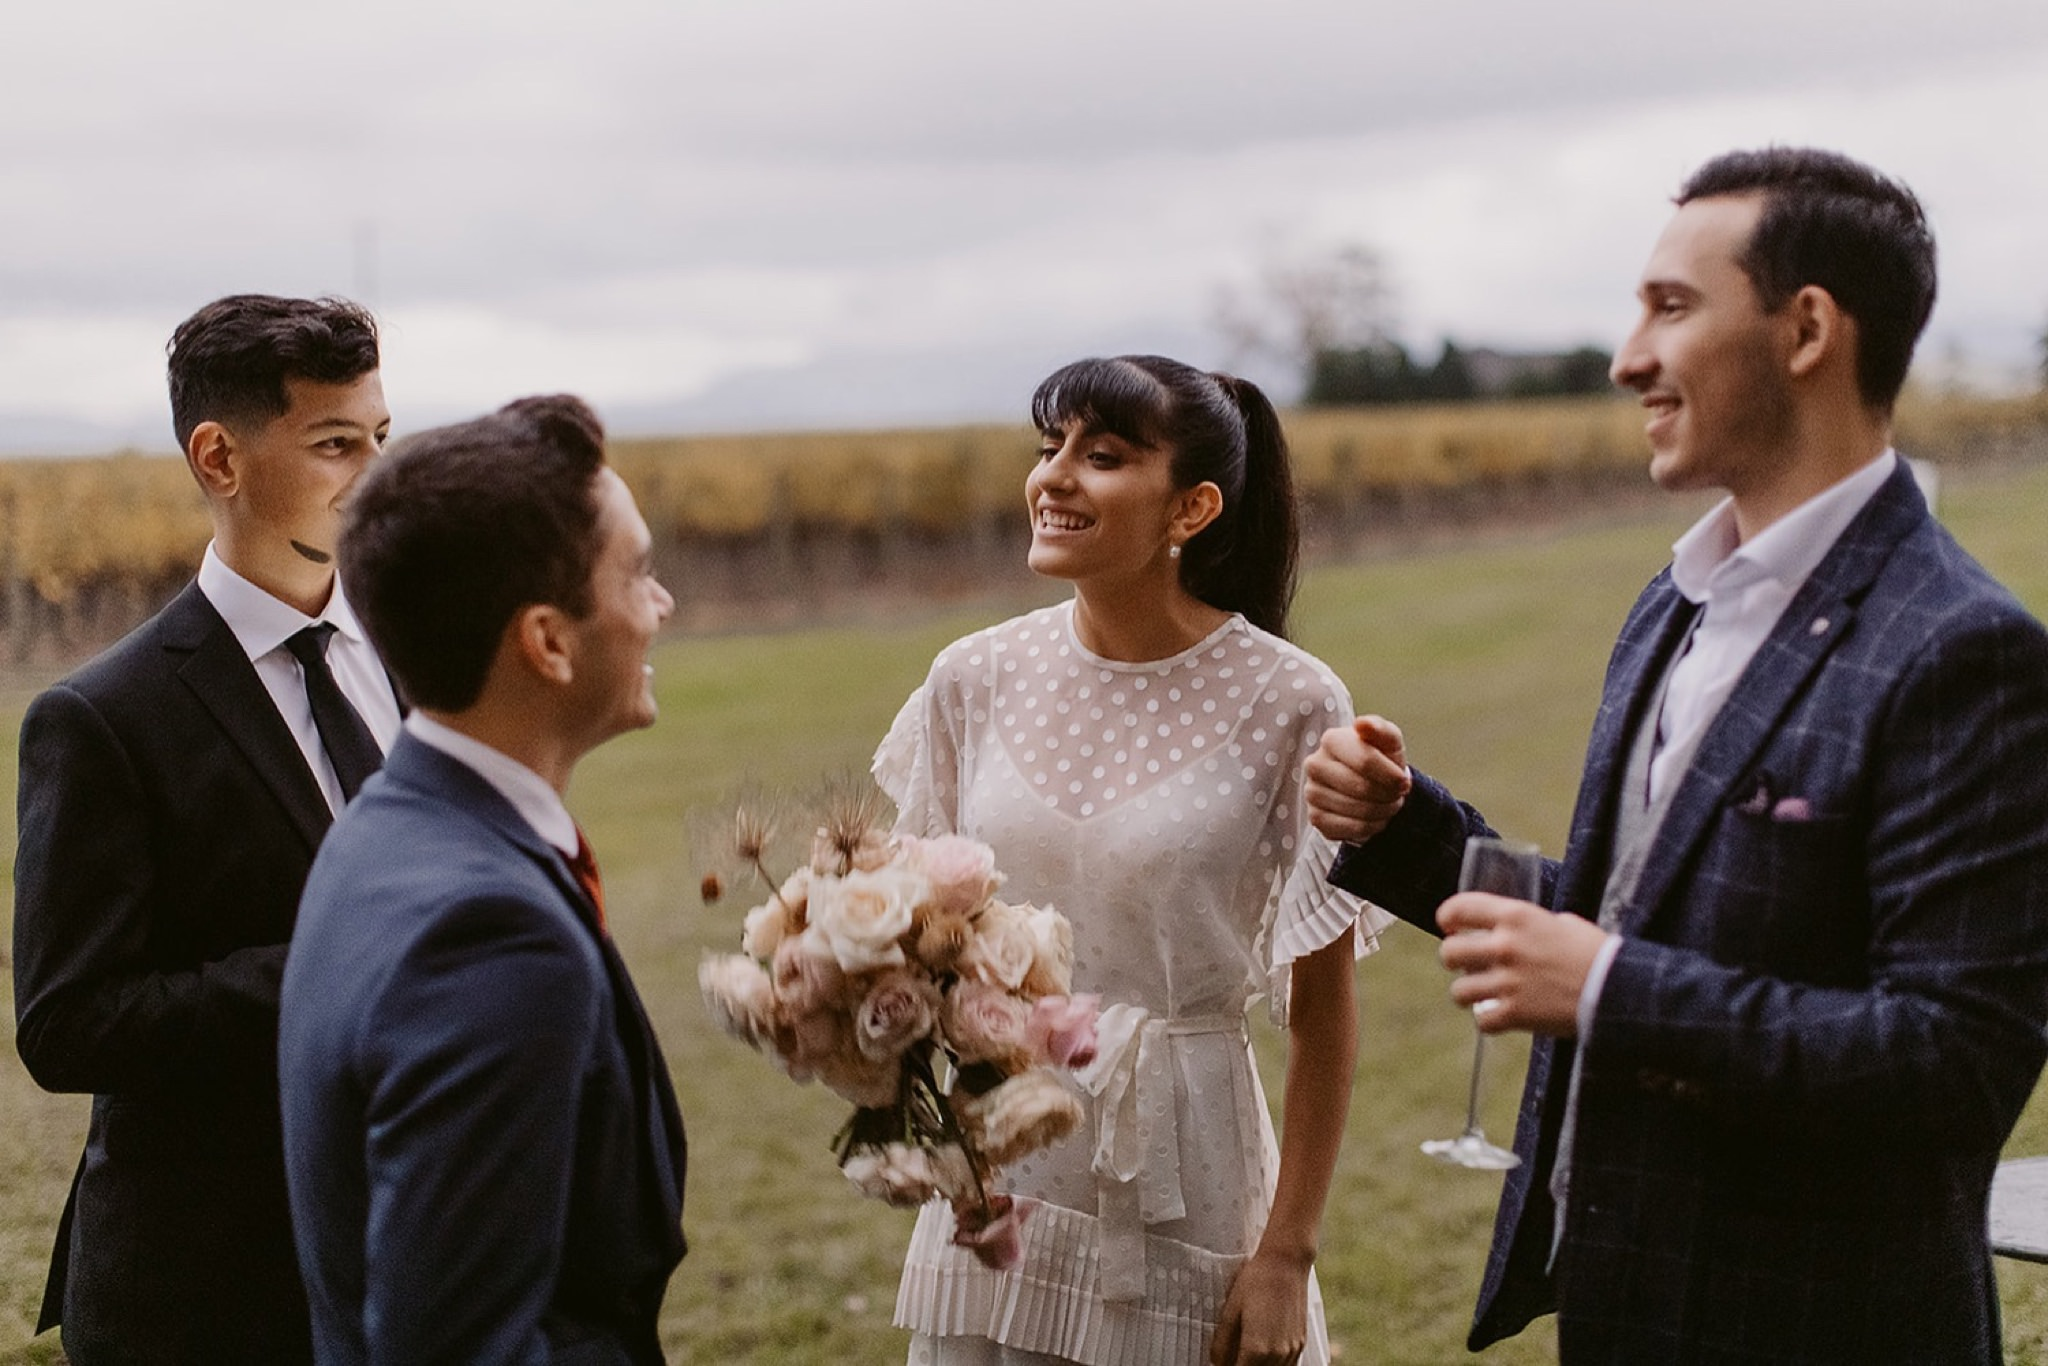 Stones of the Yarra Valley wedding photographer Ashleigh haase86.jpg